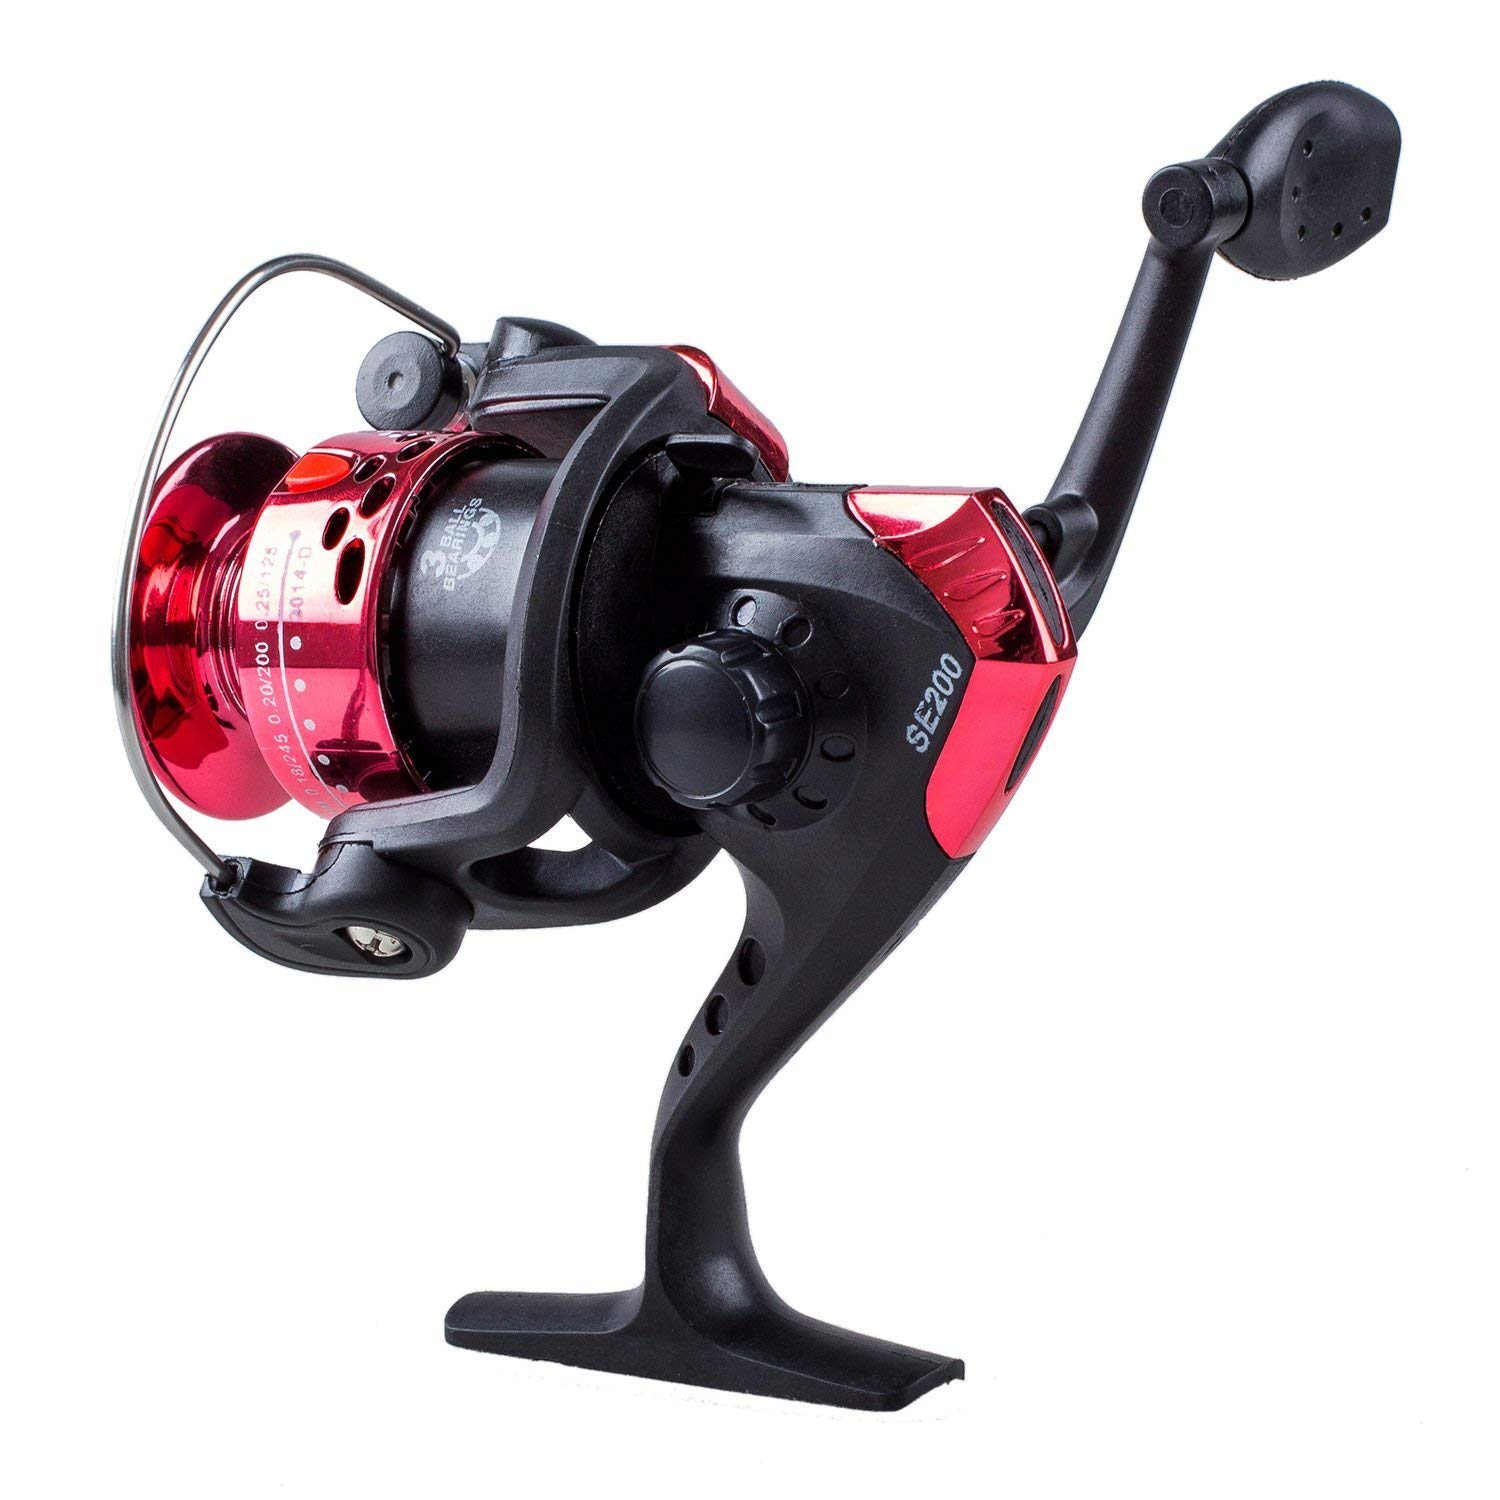 BUYEONLINE 3Bb Ball Bearings Left/Right Interchangeable Collapsible Handle Fishing Spinning Reel Se200 5.2:1 With High-Tensile Gear (Red)